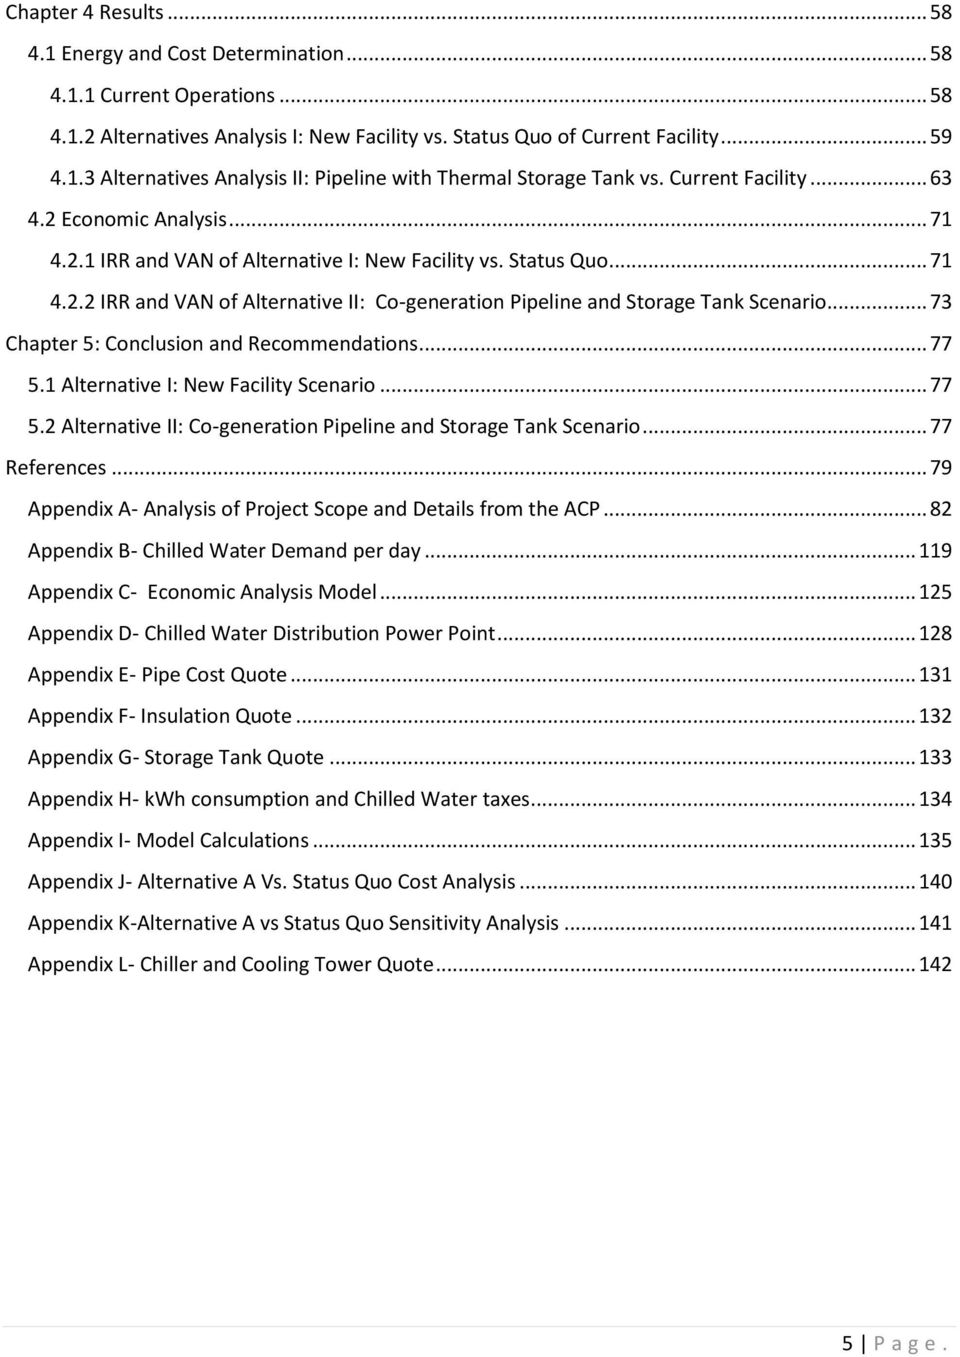 .. 73 Chapter 5: Conclusion and Recommendations... 77 5.1 Alternative I: New Facility Scenario... 77 5.2 Alternative II: Co-generation Pipeline and Storage Tank Scenario... 77 References.